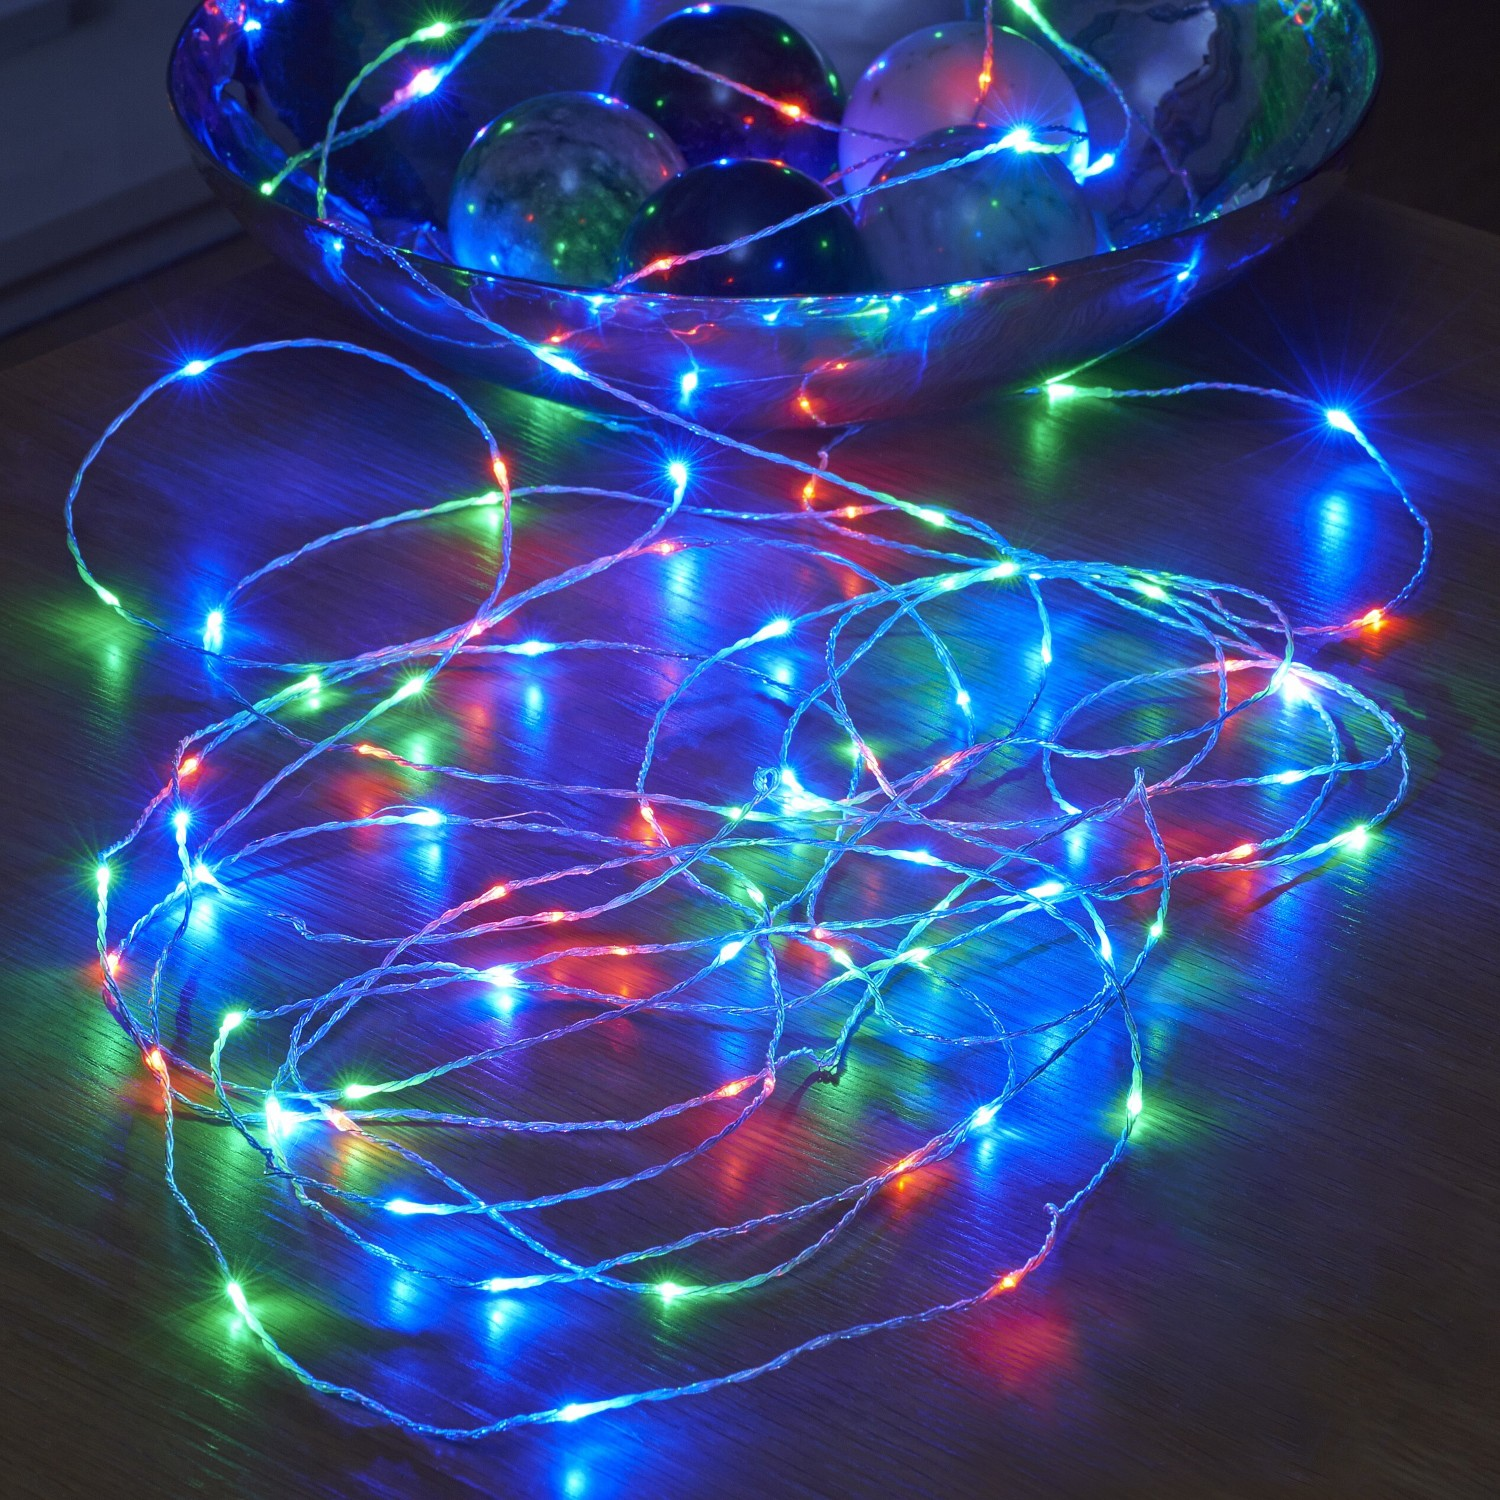 Micro LED String Lights - Battery Operated - Remote Controlled - Outdoor - RGB - 5M - Auraglow ...